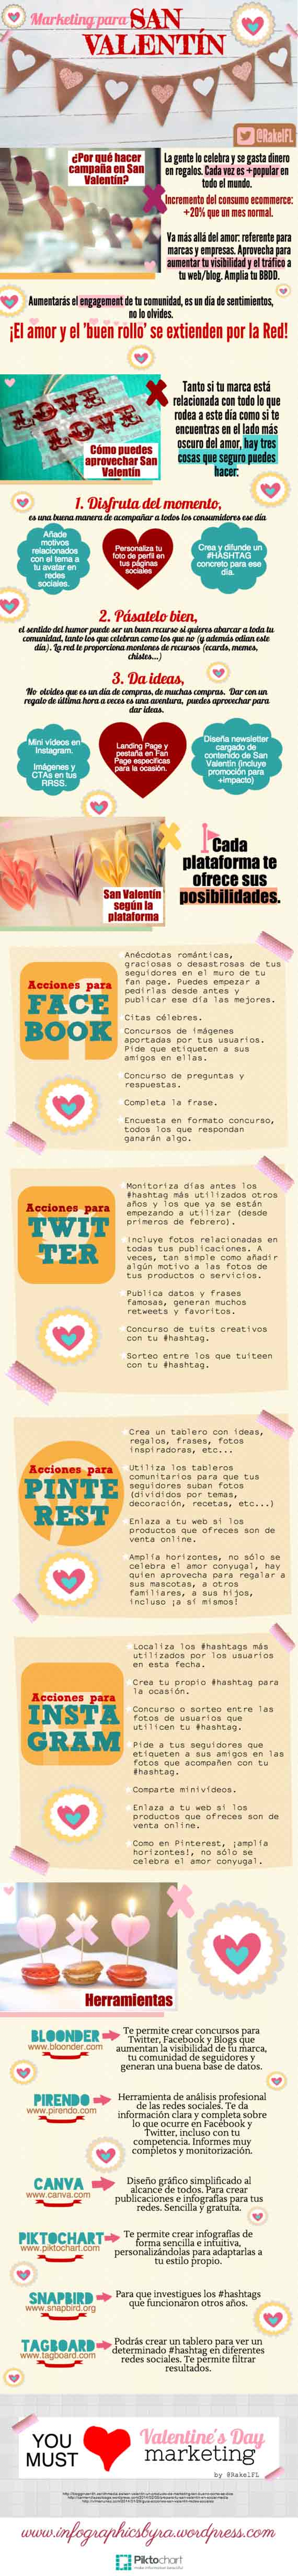 infografia_marketing_para_san_valentin